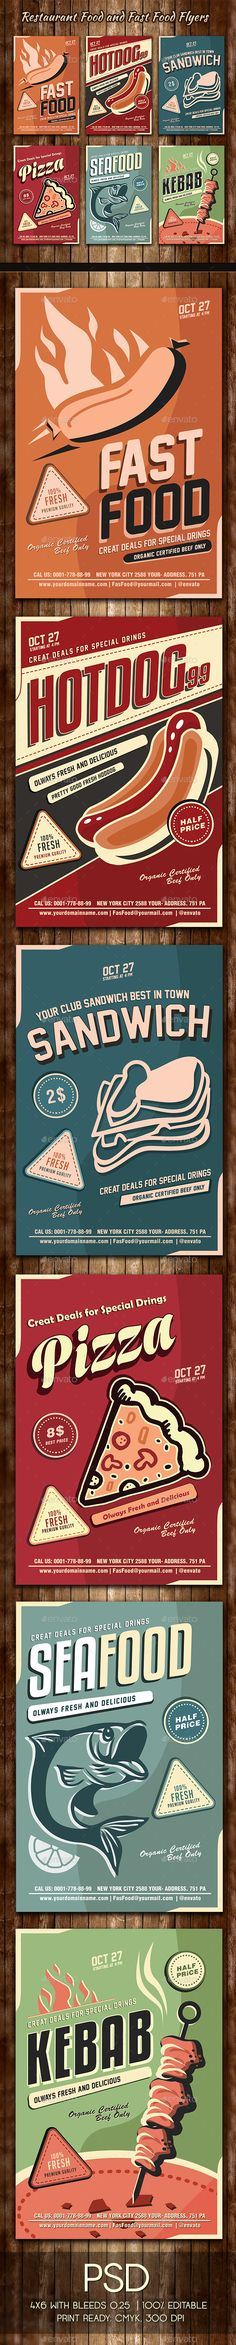 Restaurant Food and Fast Food Flyers - Restaurant Flyers